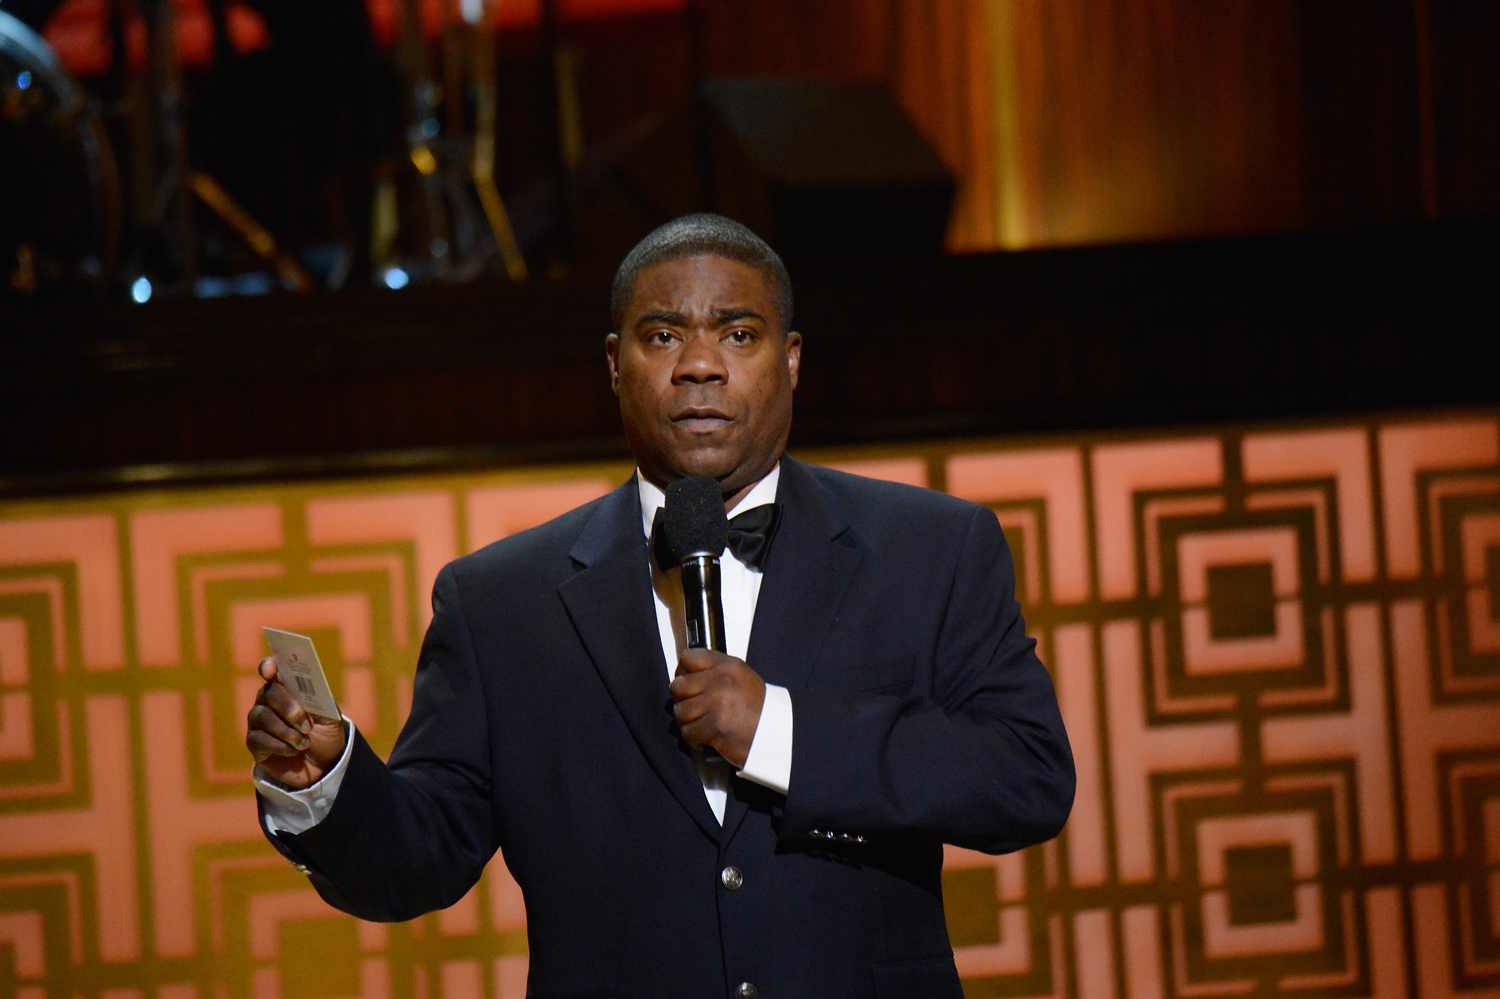 Tracy Morgan speaks onstage at Spike TV's  Don Rickles: One Night Only  on May 6, 2014 in New York.